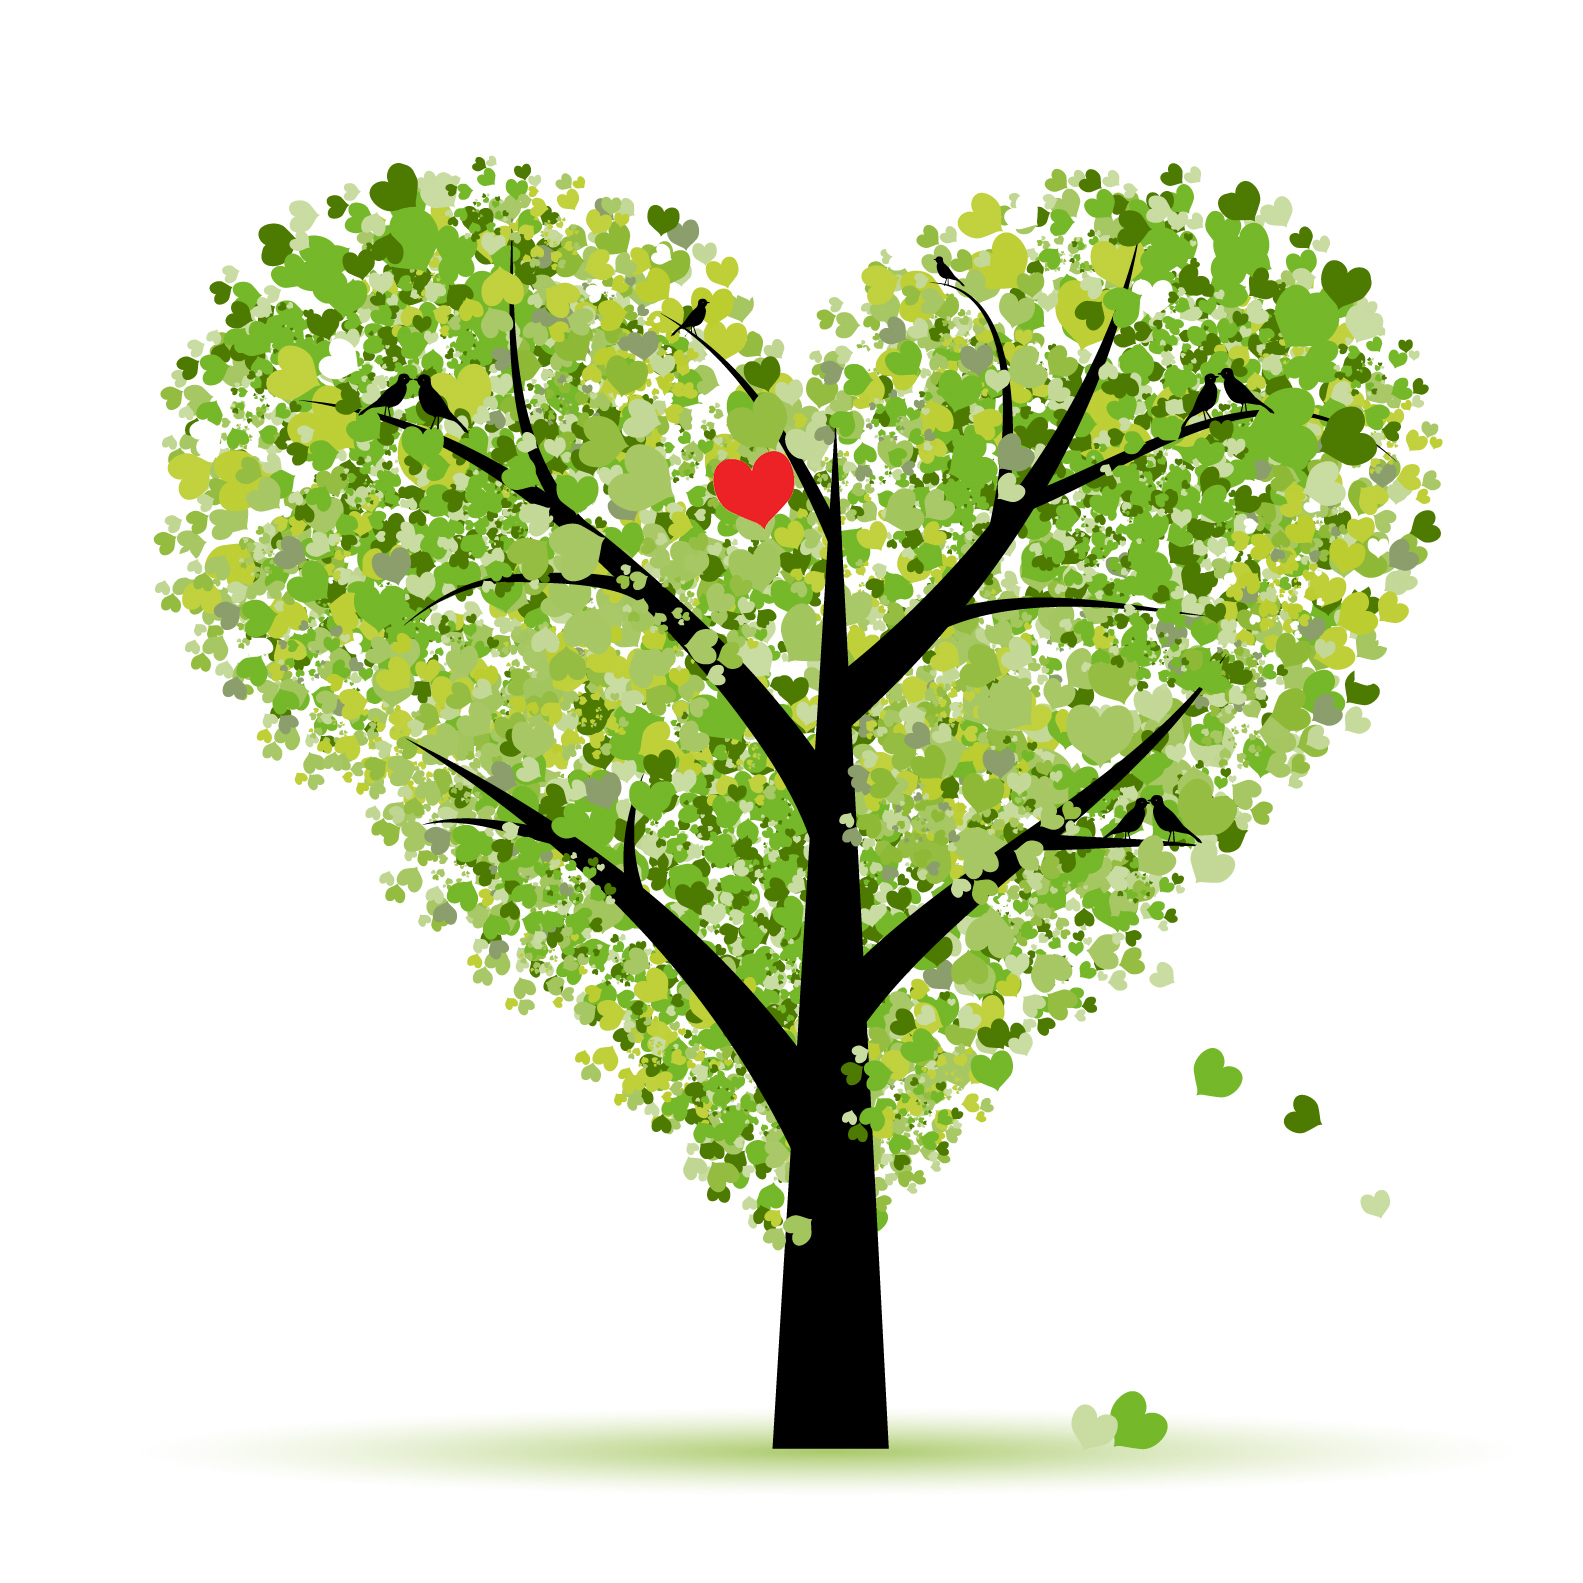 Free cliparts download clip. Tree clipart heart